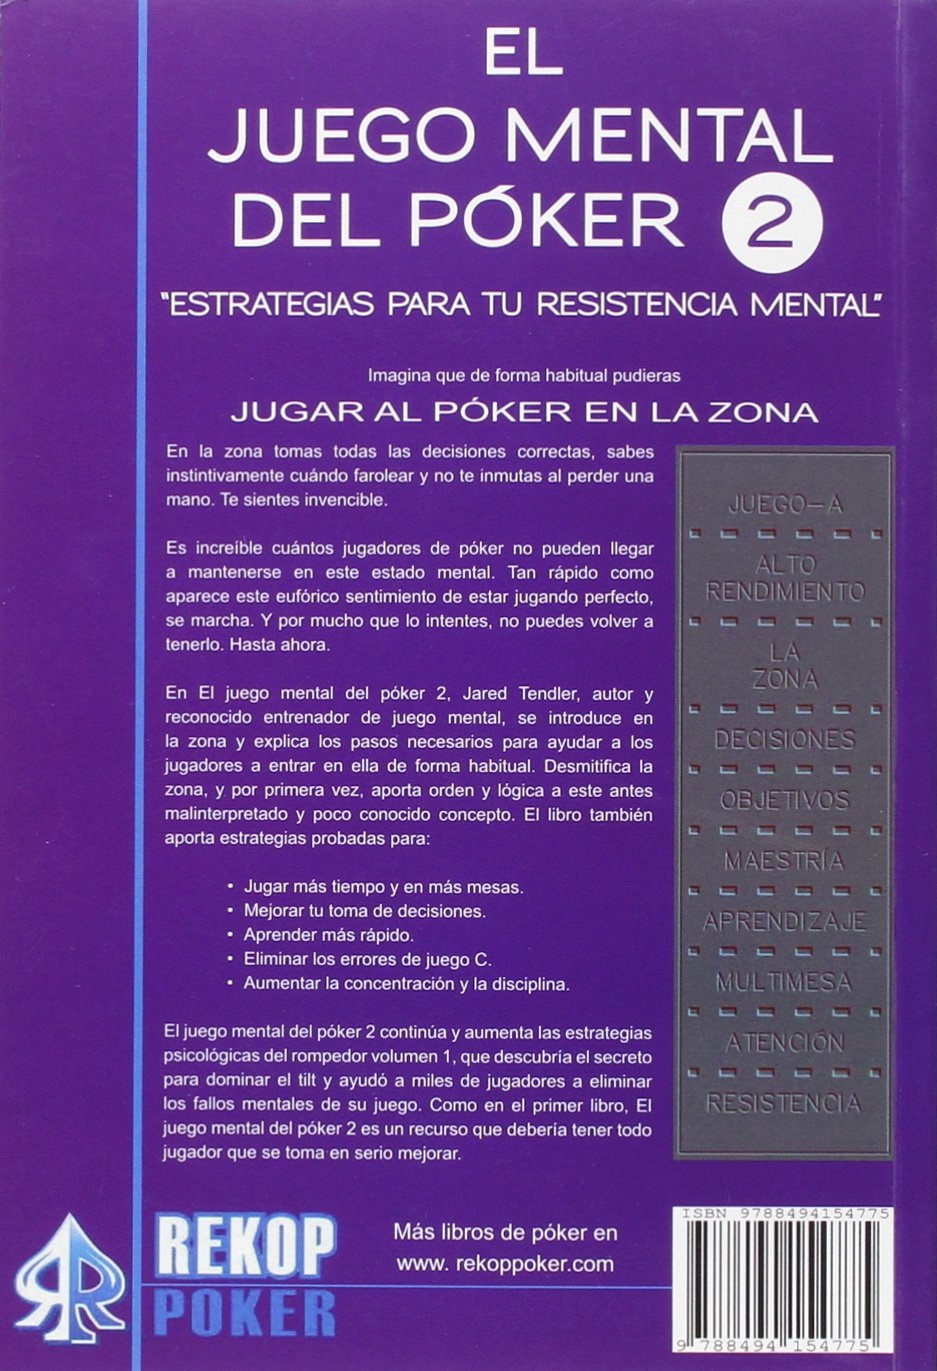 El Juego Mental Del Poker Vol Ii Rekoppoker Amazon Es Jared Y